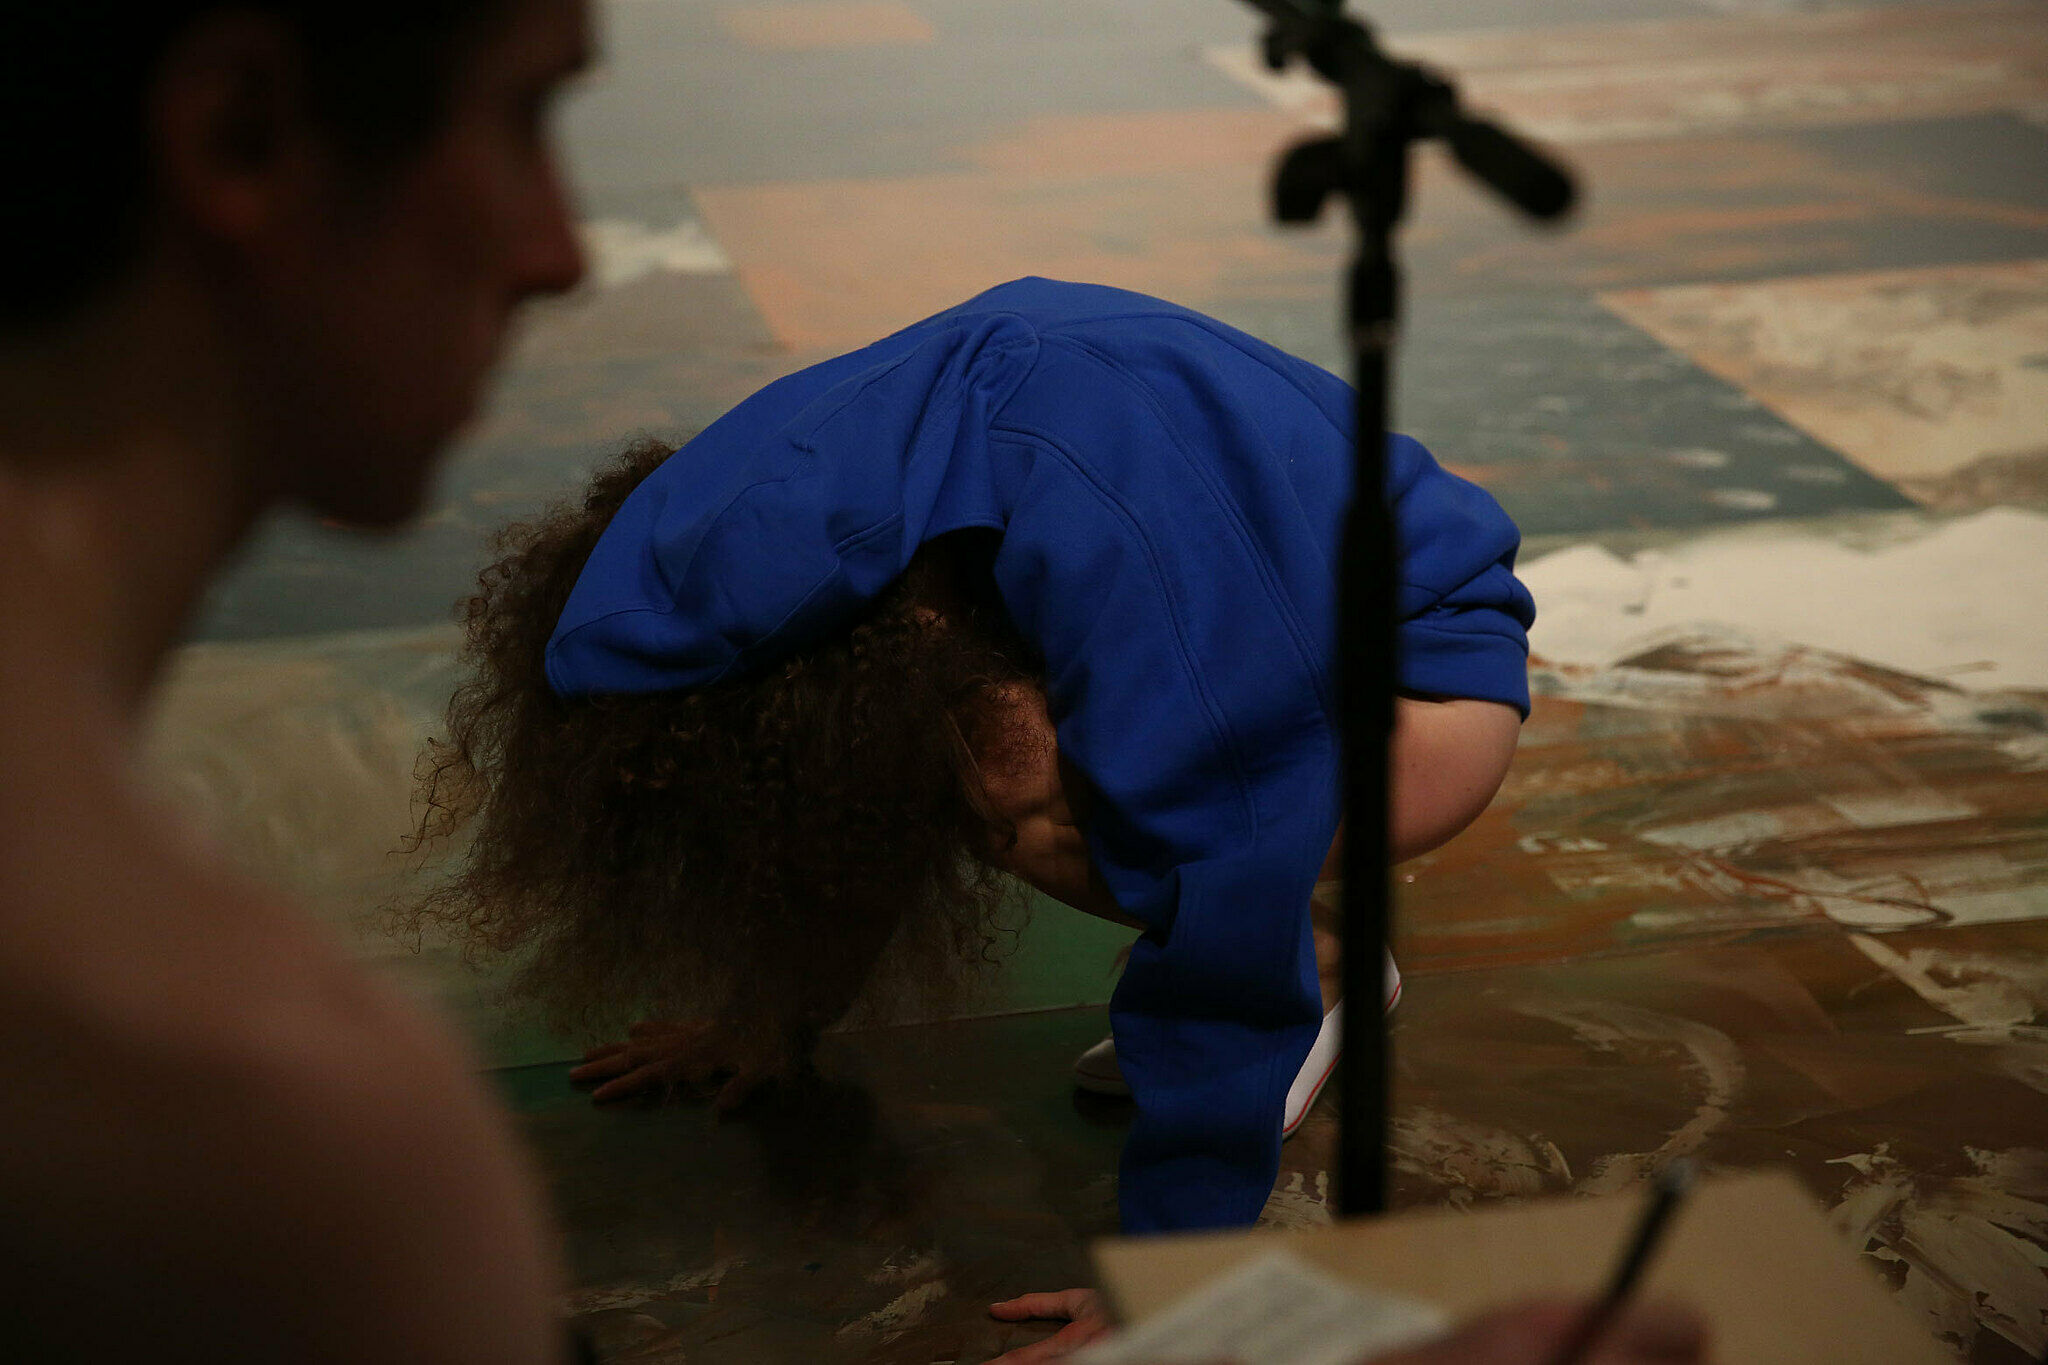 A dancer dressed in blue hunches over on the floor.